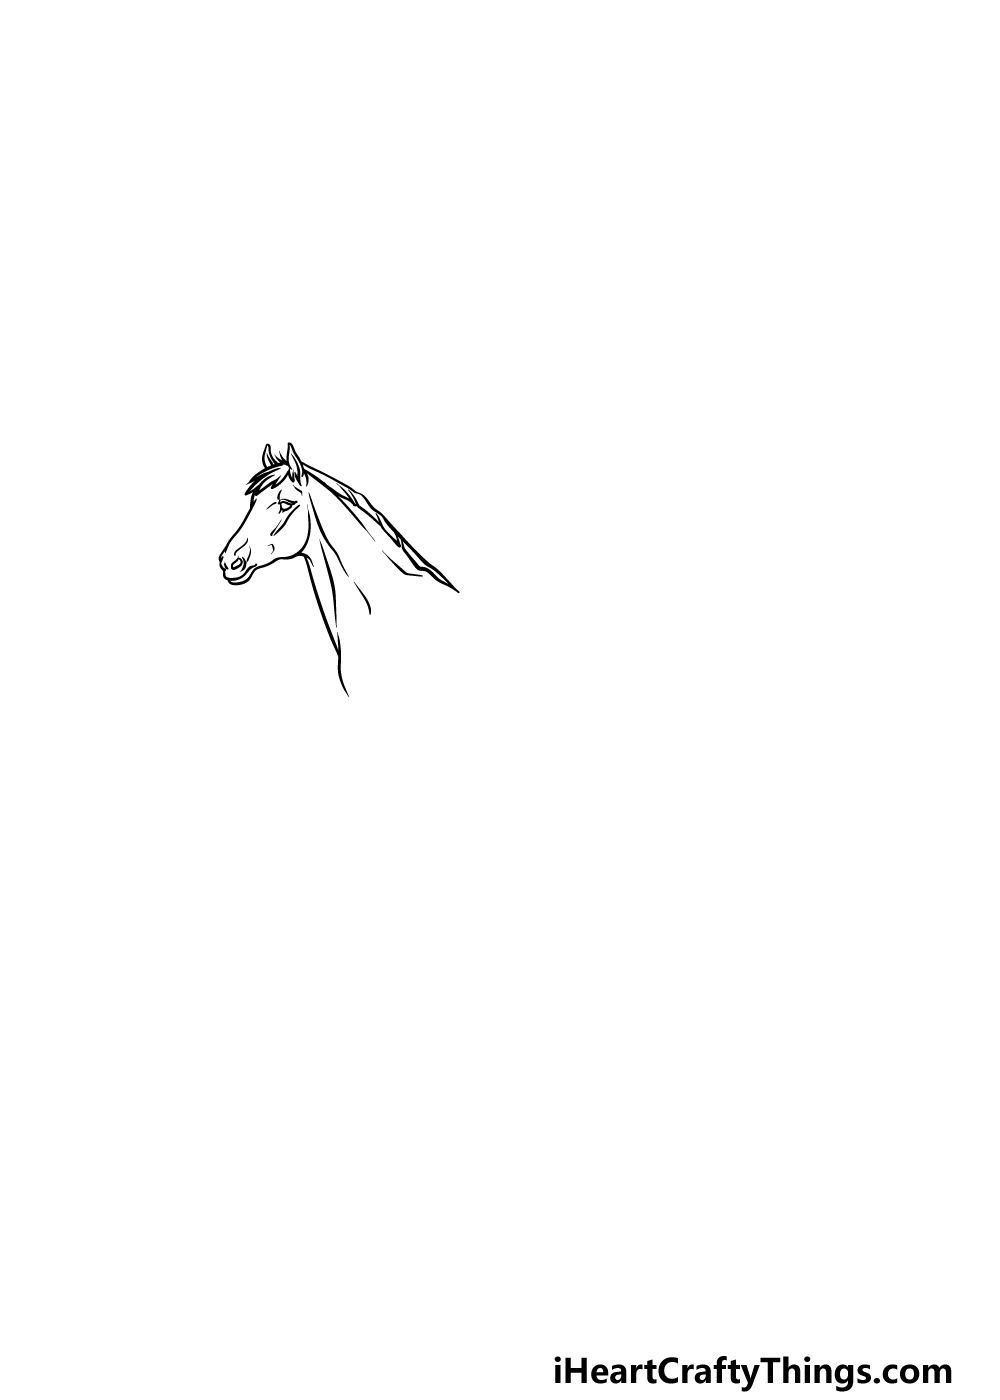 drawing a horse step 1